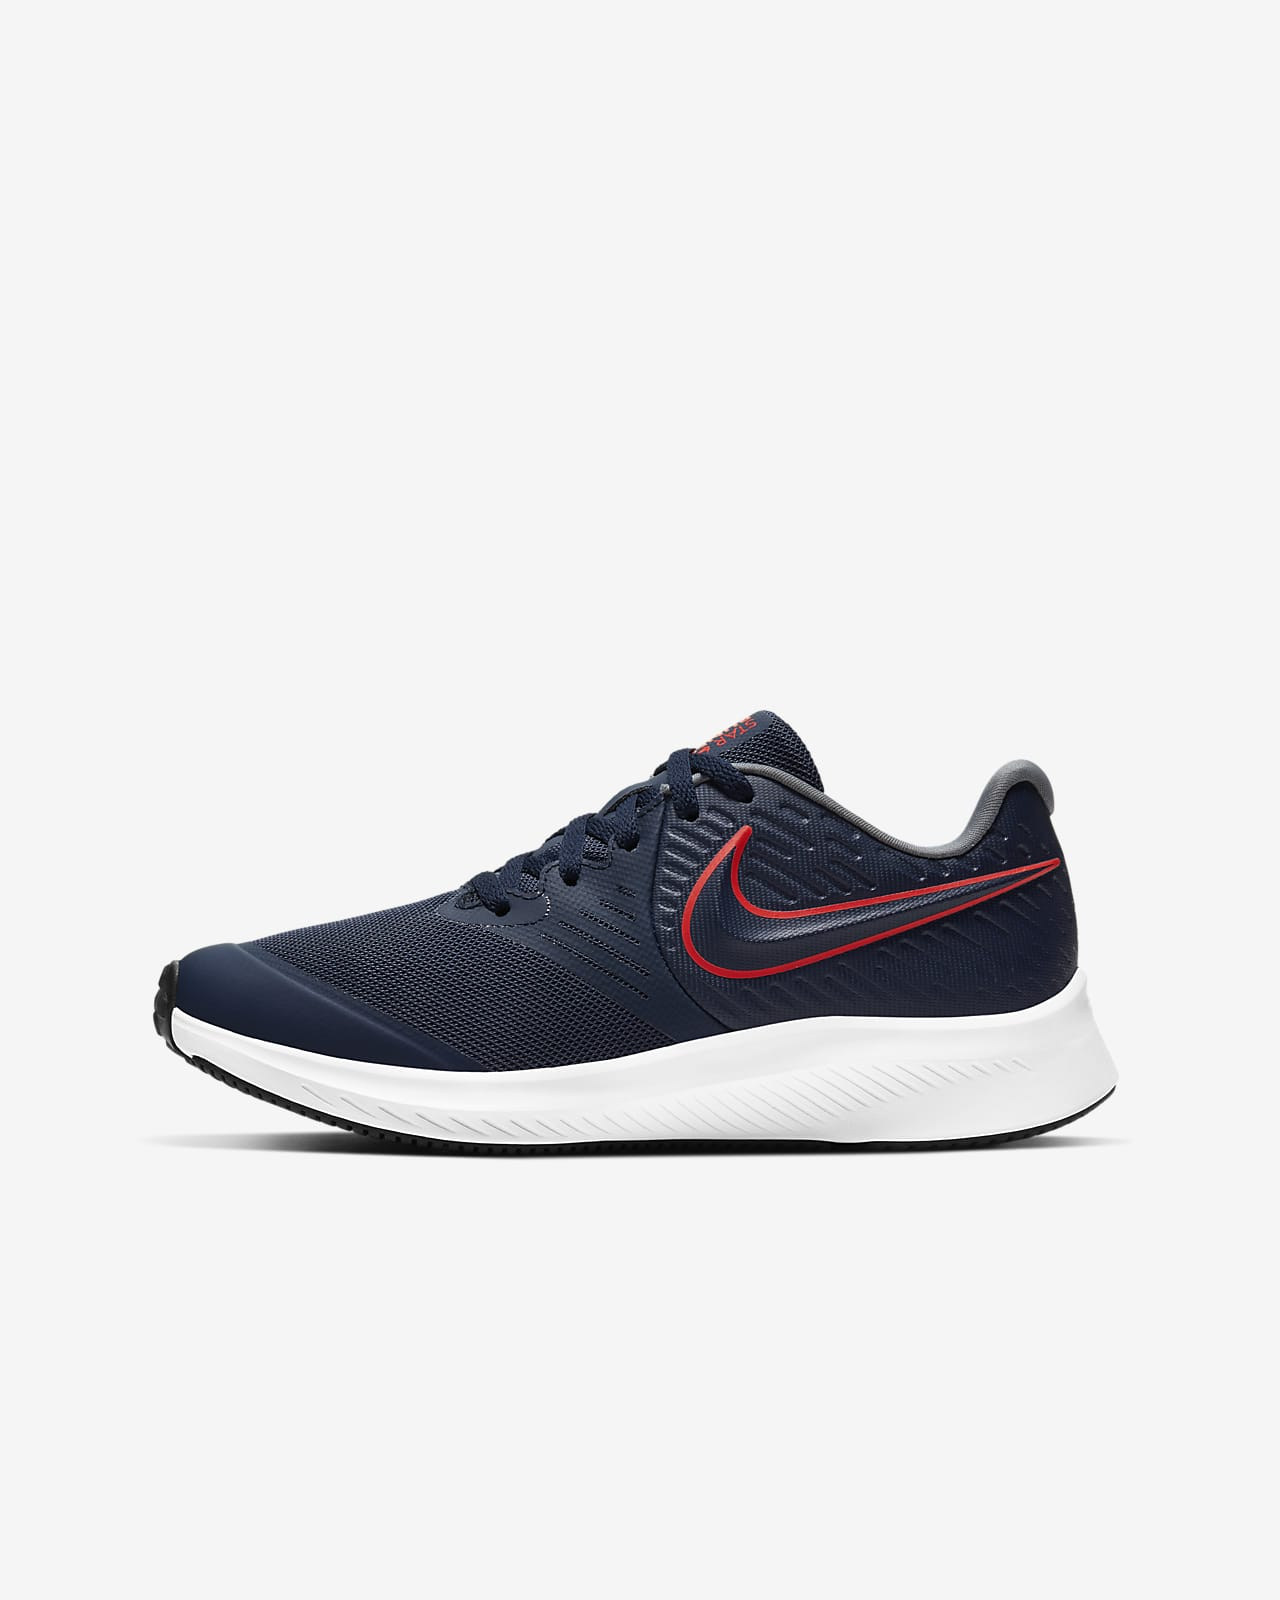 Nike Star Runner 2 Zapatillas de running - Niño/a